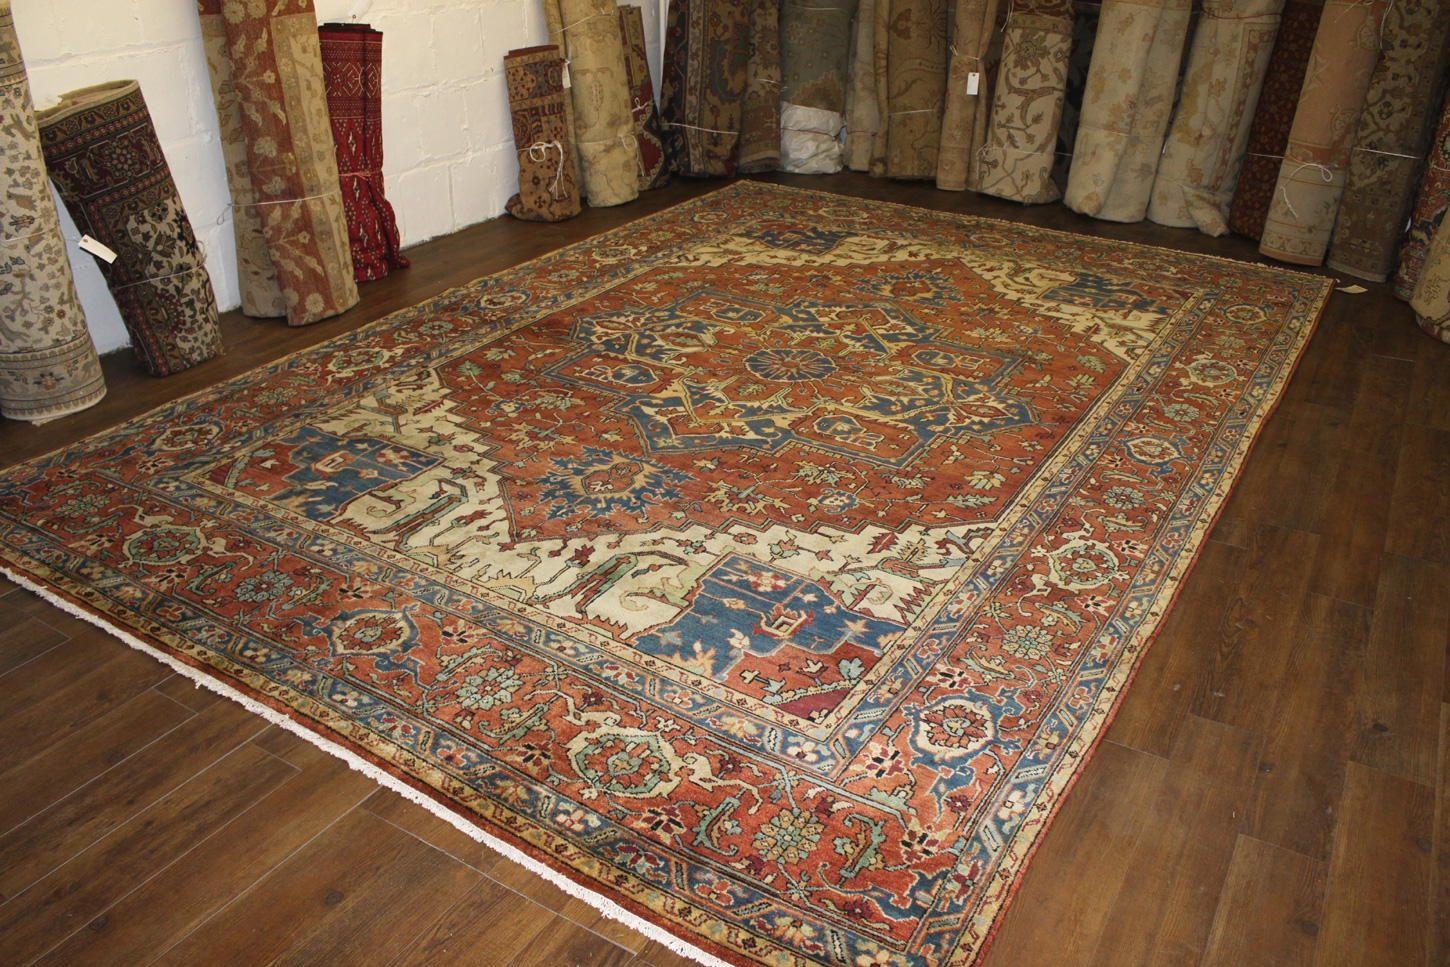 15 Ideas Of 10 215 14 Wool Area Rugs